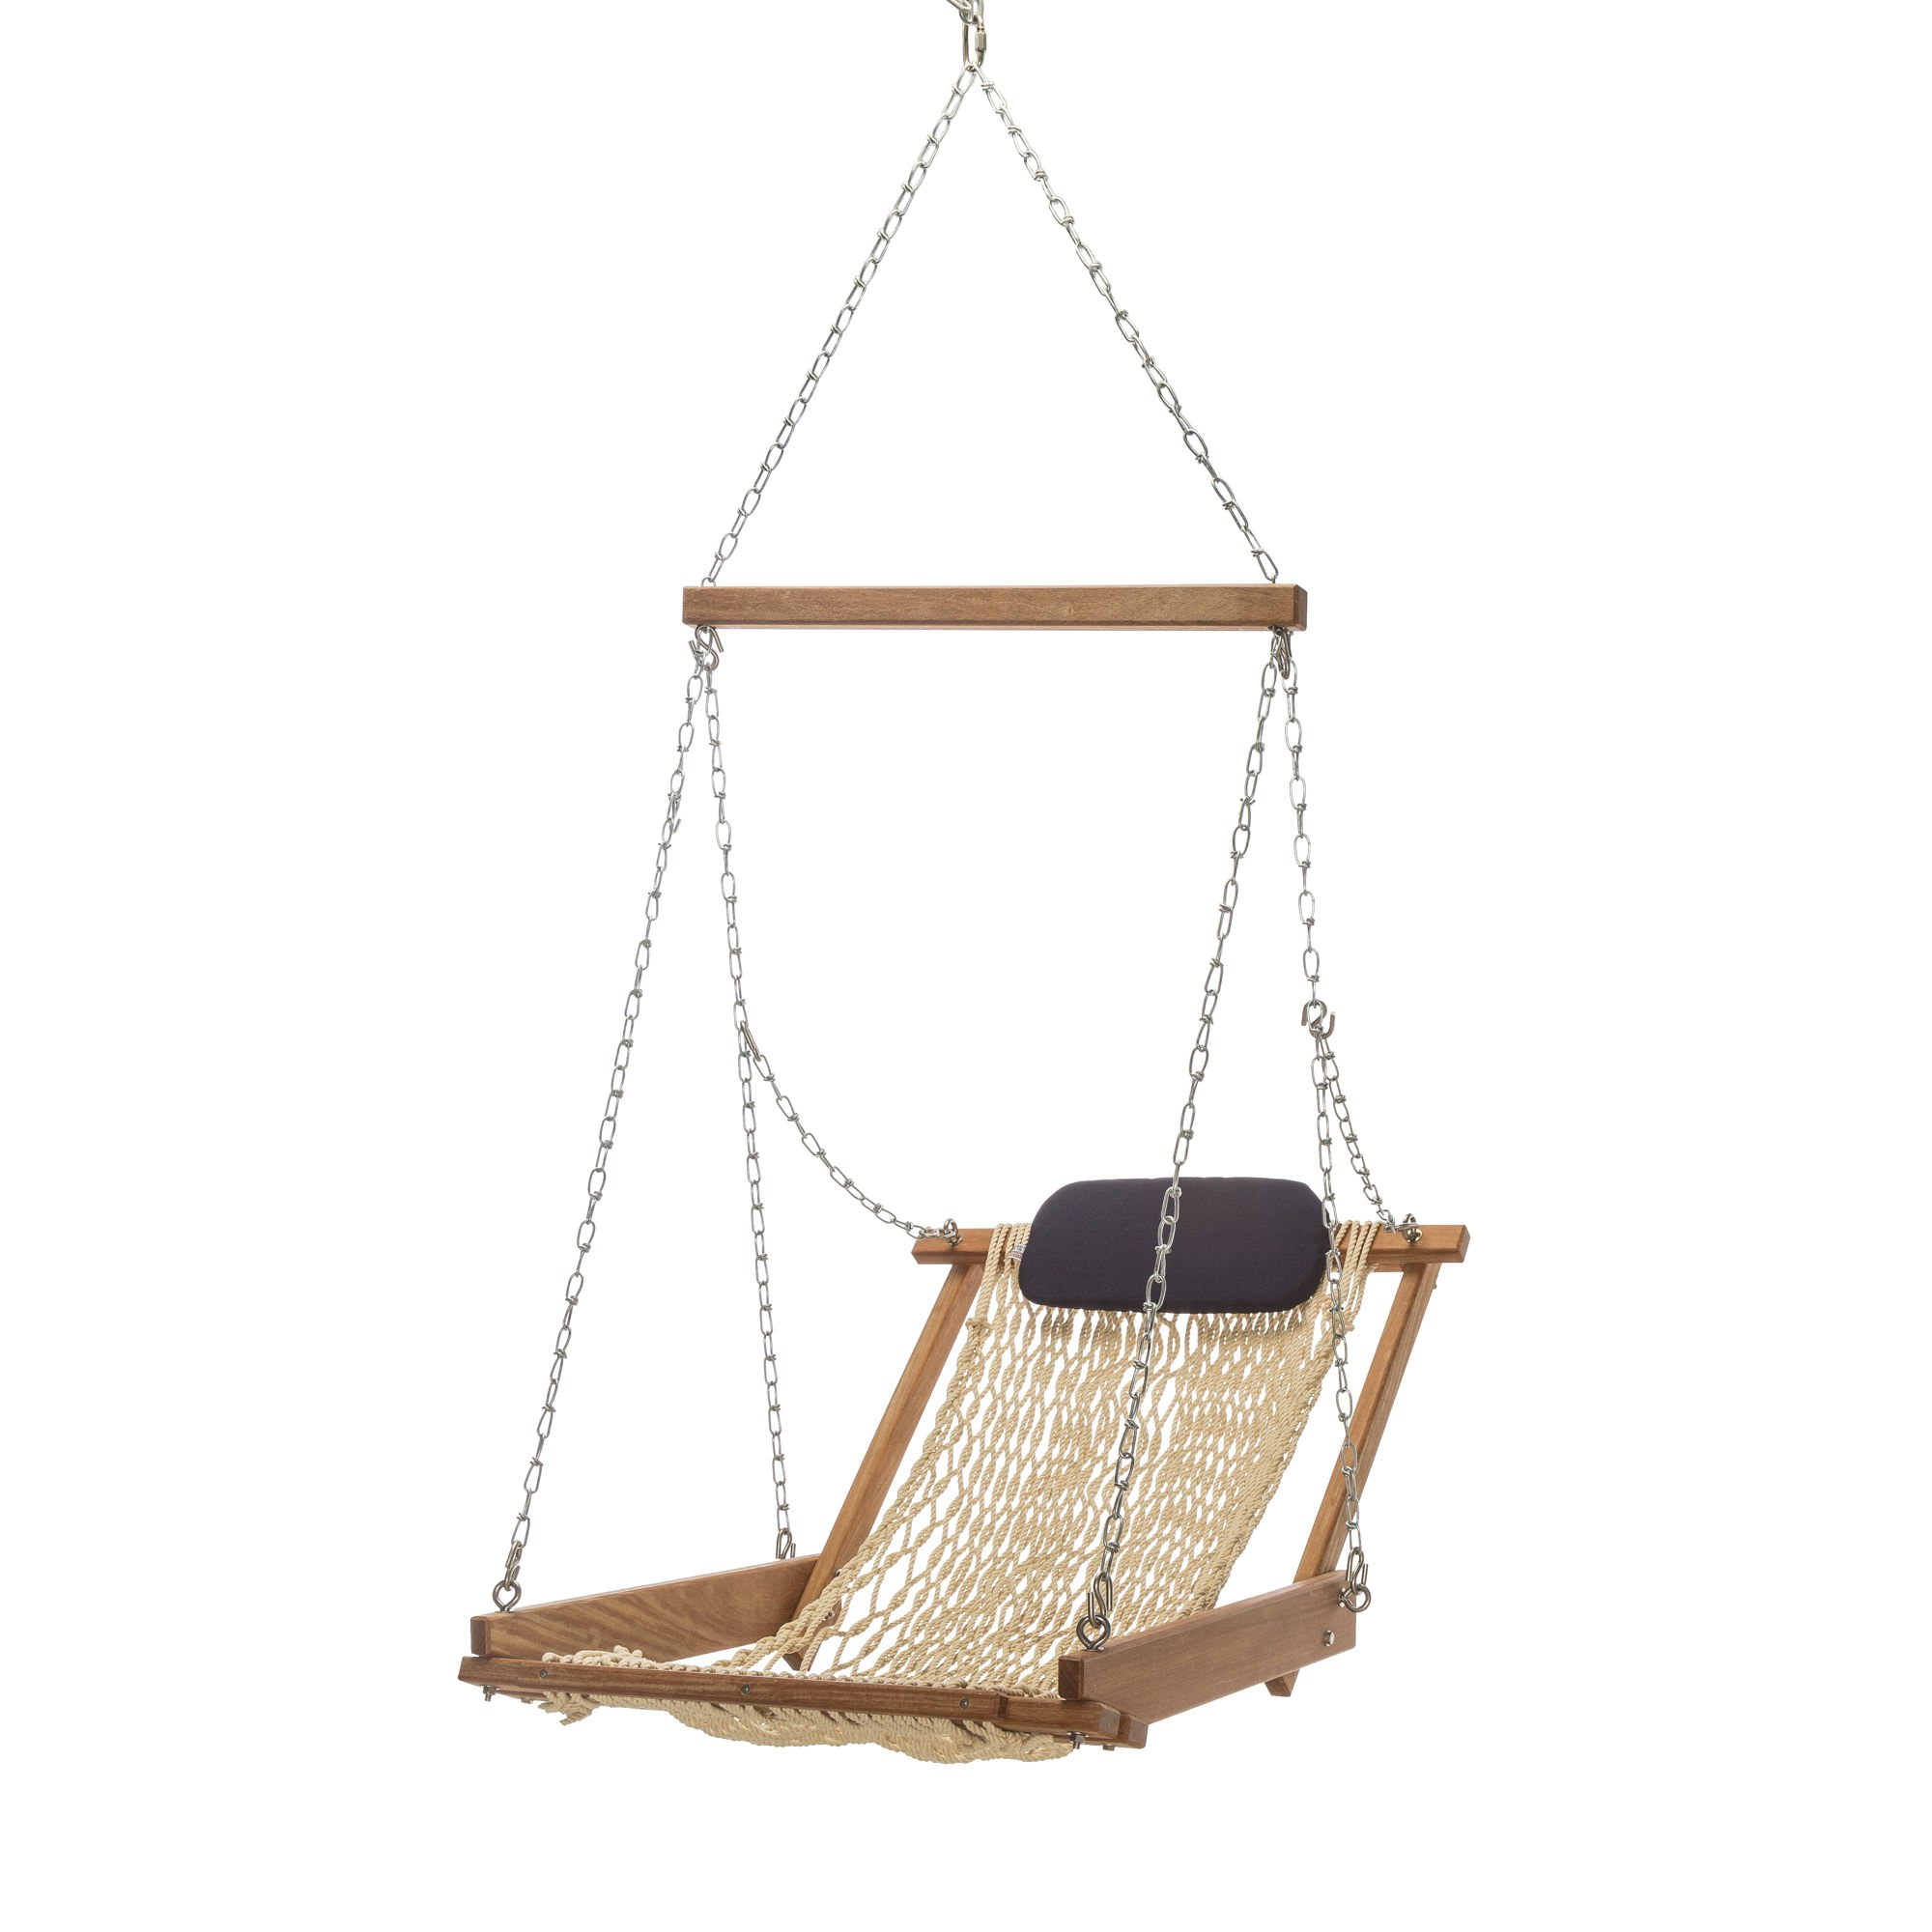 ca hammock outdoor wayfair swinging with swing garden pdp chair baner stand